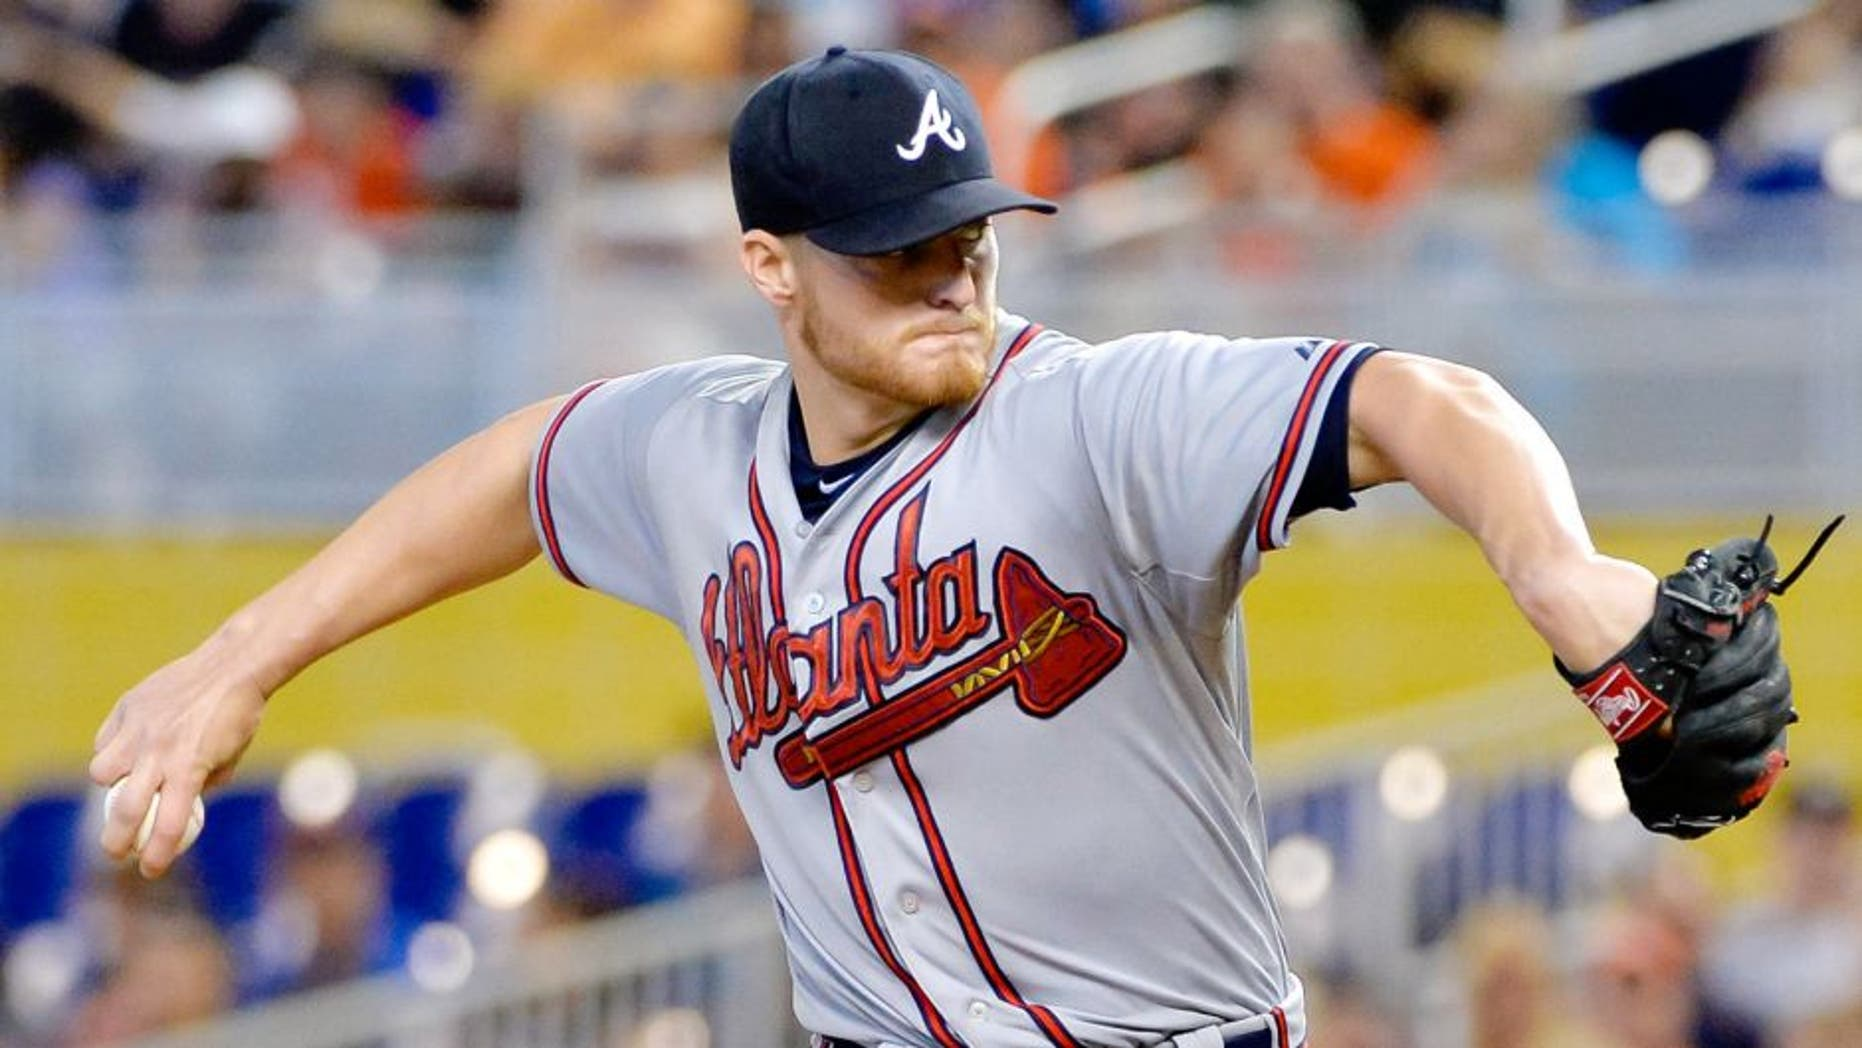 May 17, 2015; Miami, FL, USA; Atlanta Braves starting pitcher Shelby Miller (17) delivers a pitch against the Miami Marlins during the first inning at Marlins Park. Mandatory Credit: Steve Mitchell-USA TODAY Sports